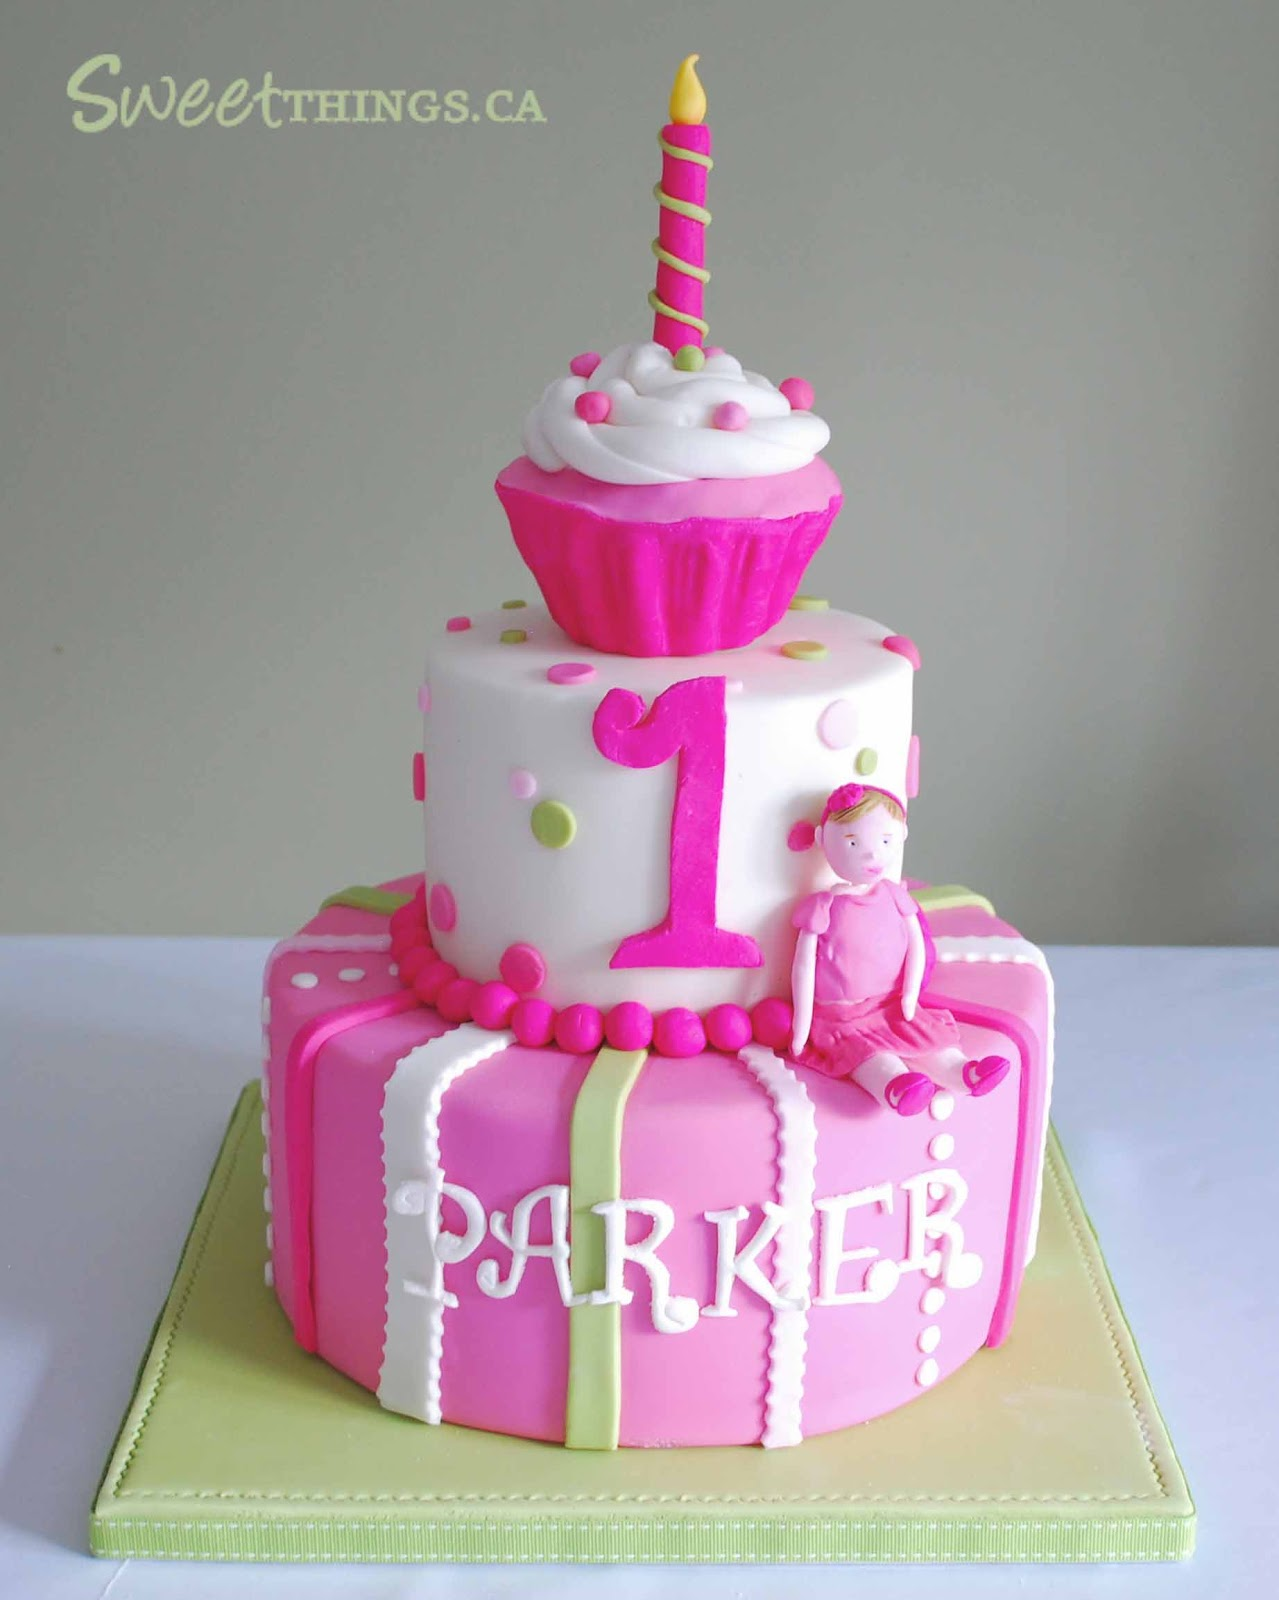 Cake Design For 2 Year Old Baby Girl : SweetThings: Colorful 1st Birthday Cake